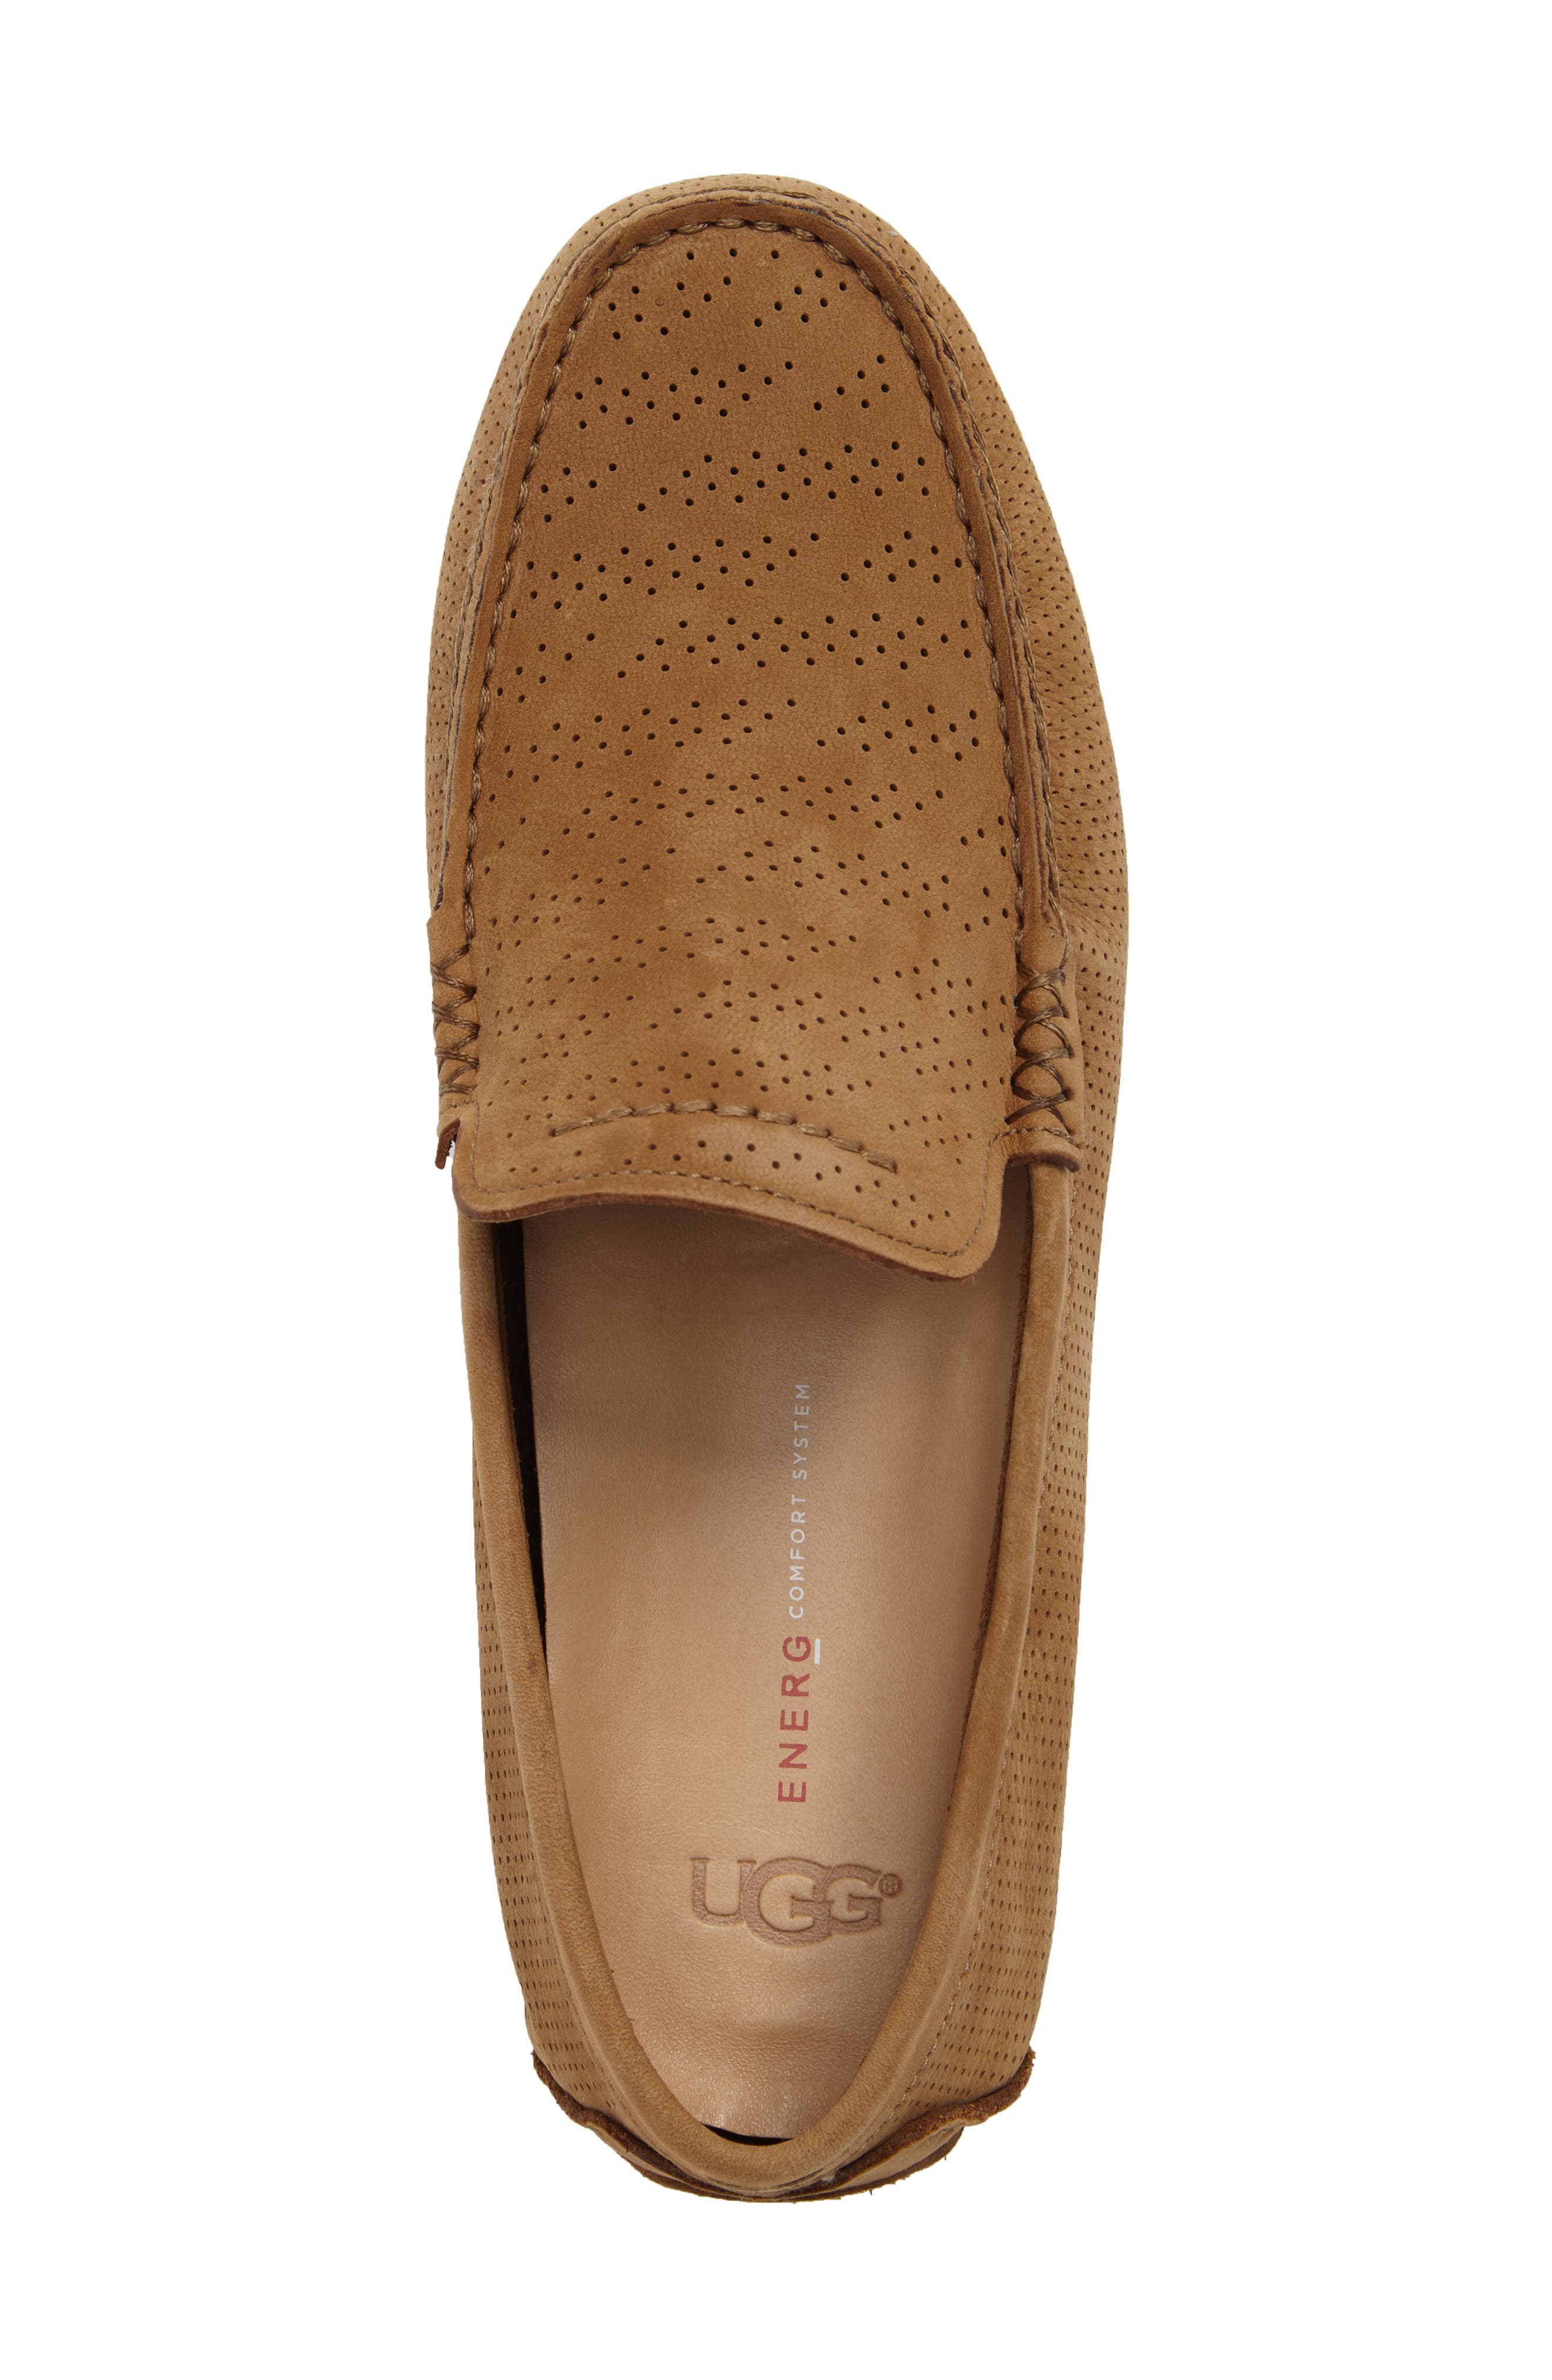 UGG<SUP>®</SUP>, Henrick Twinsole<sup>®</sup> Driving Shoe, Alternate thumbnail 5, color, TAMARIND